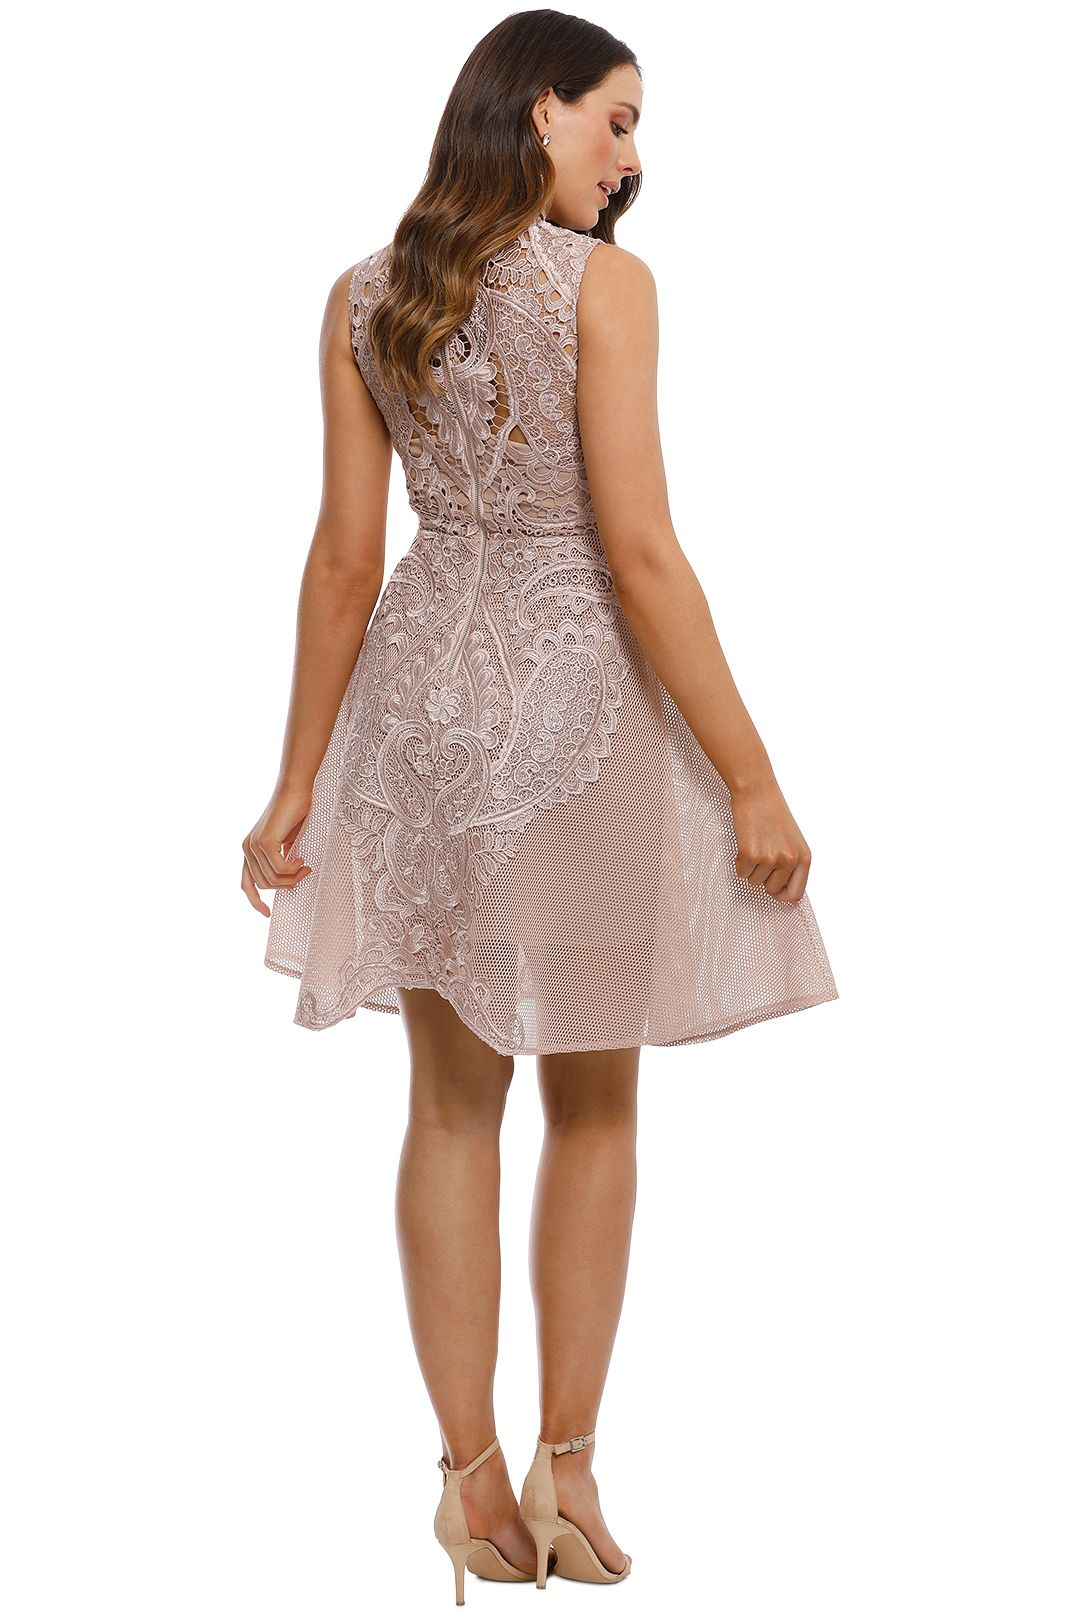 Grace and Hart - Center Stage Flare Midi Dress - Nude - Back